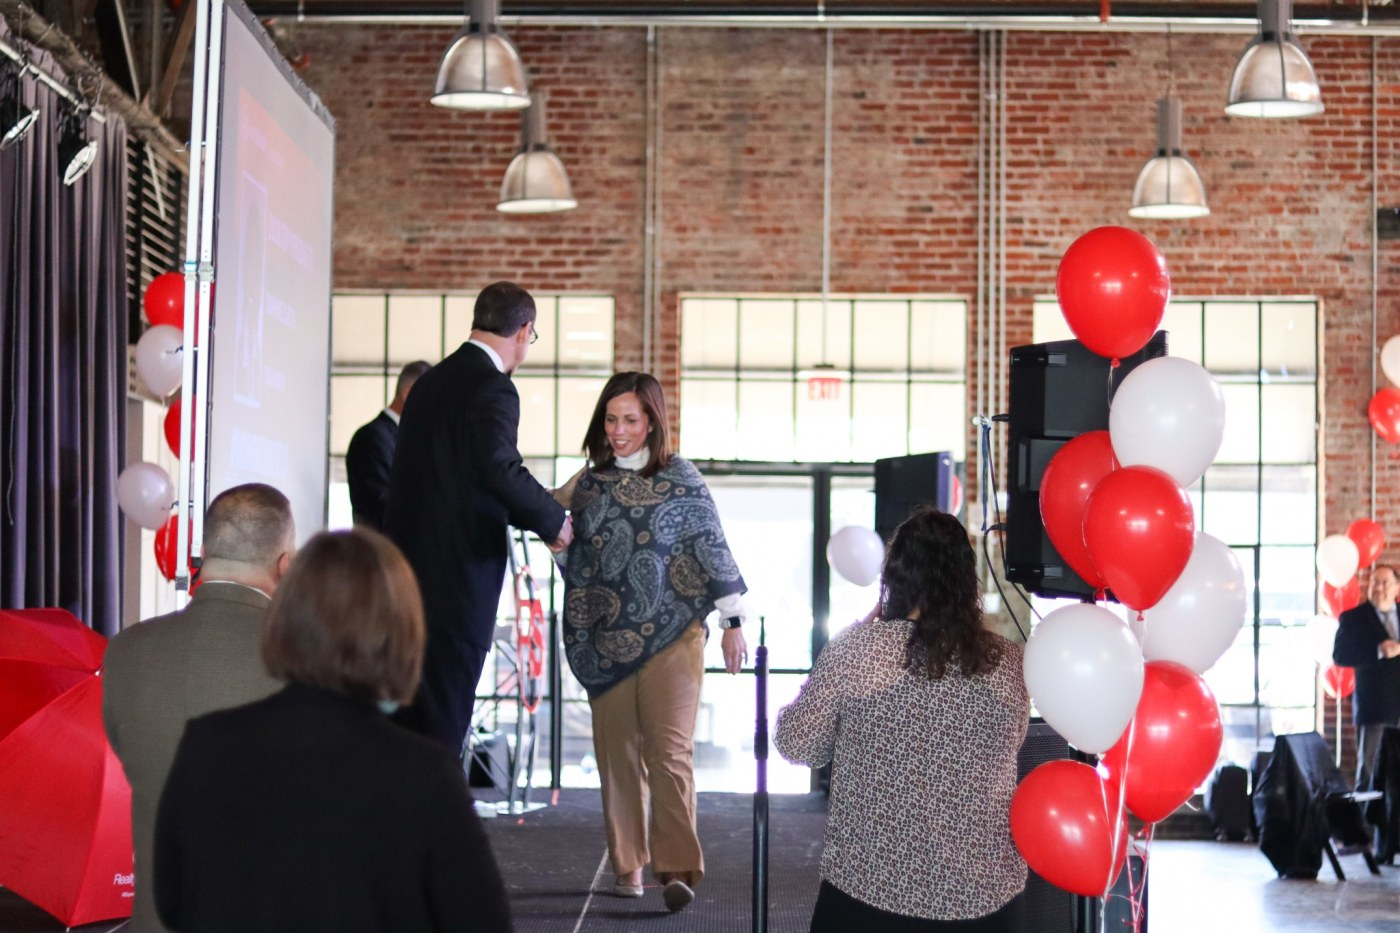 Birmingham, Alabama, the Haven, RealtySouth, Richard Grimes, Red Mountain Grace